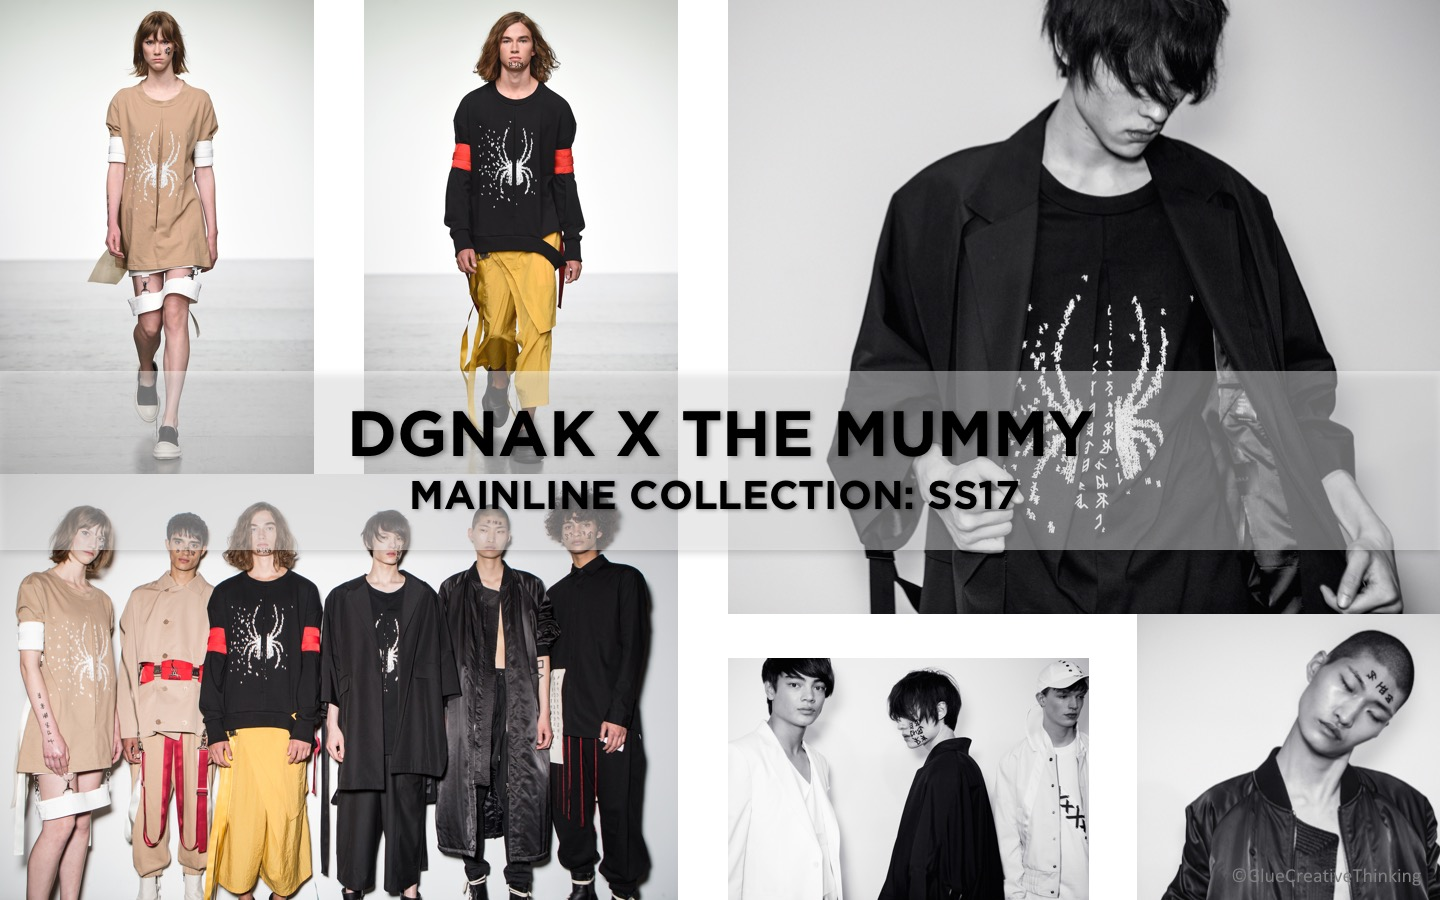 DGNAK X THE MUMMY